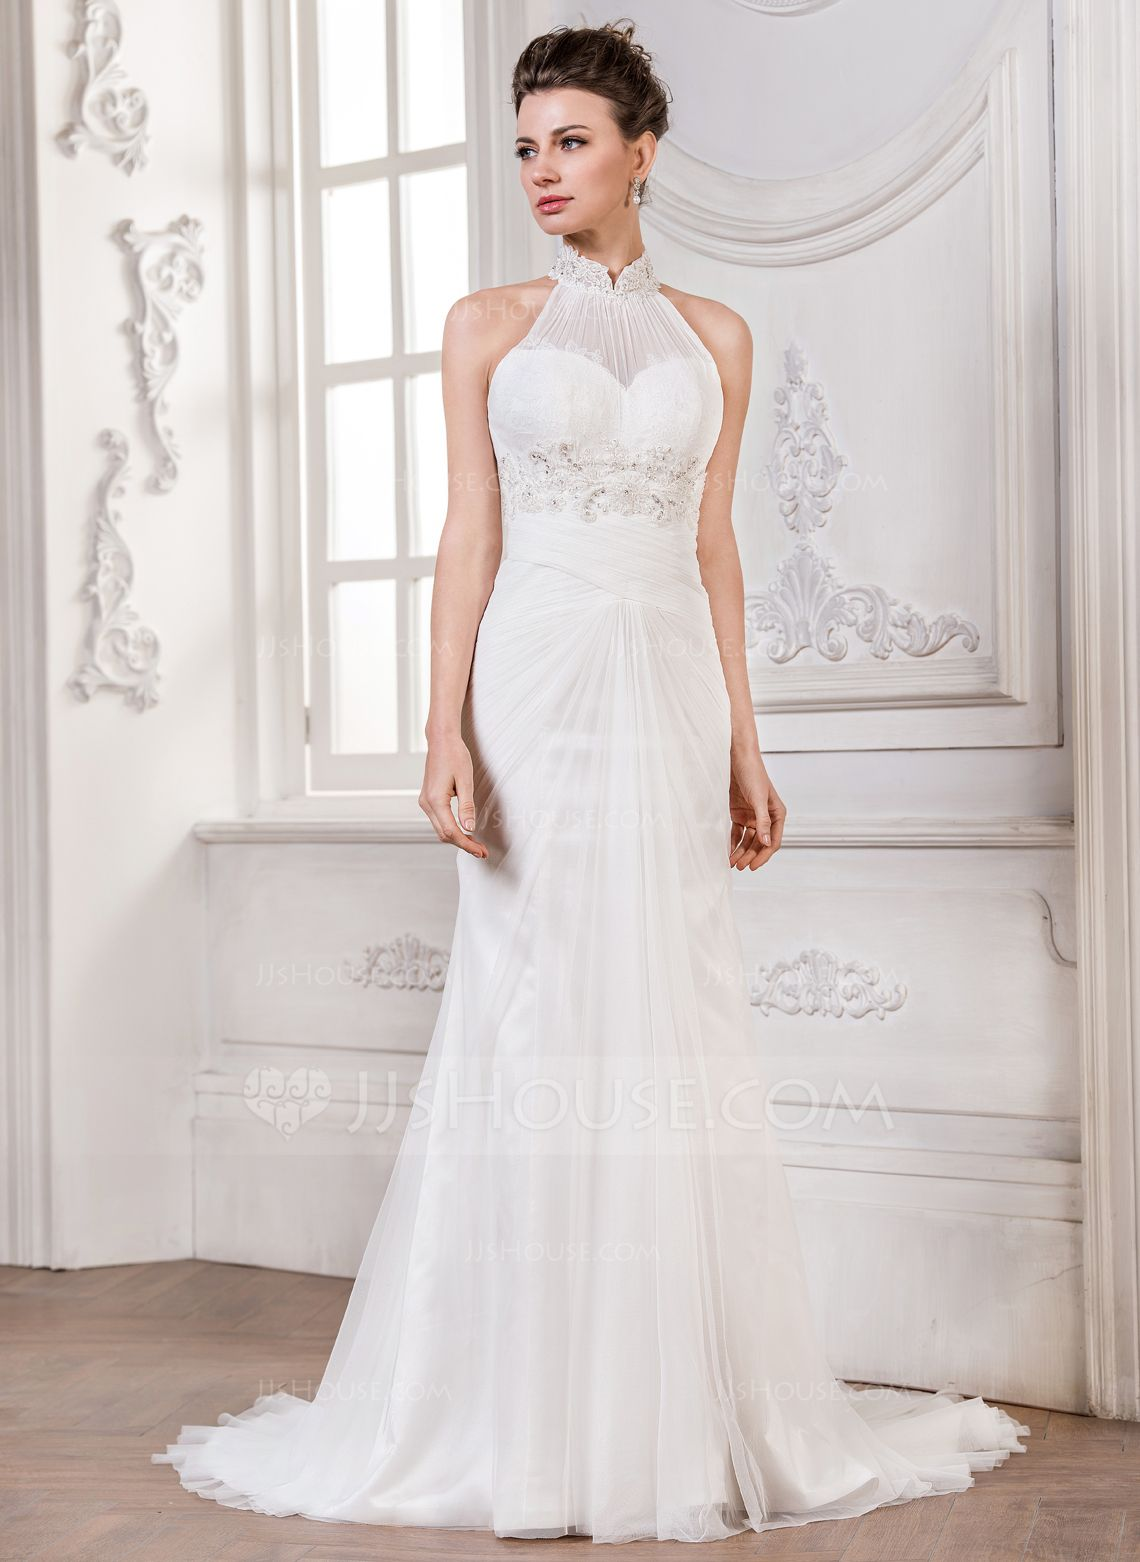 Wedding dress without train  TrumpetMermaid High Neck Court Train Ruffle Lace Beading Sequins